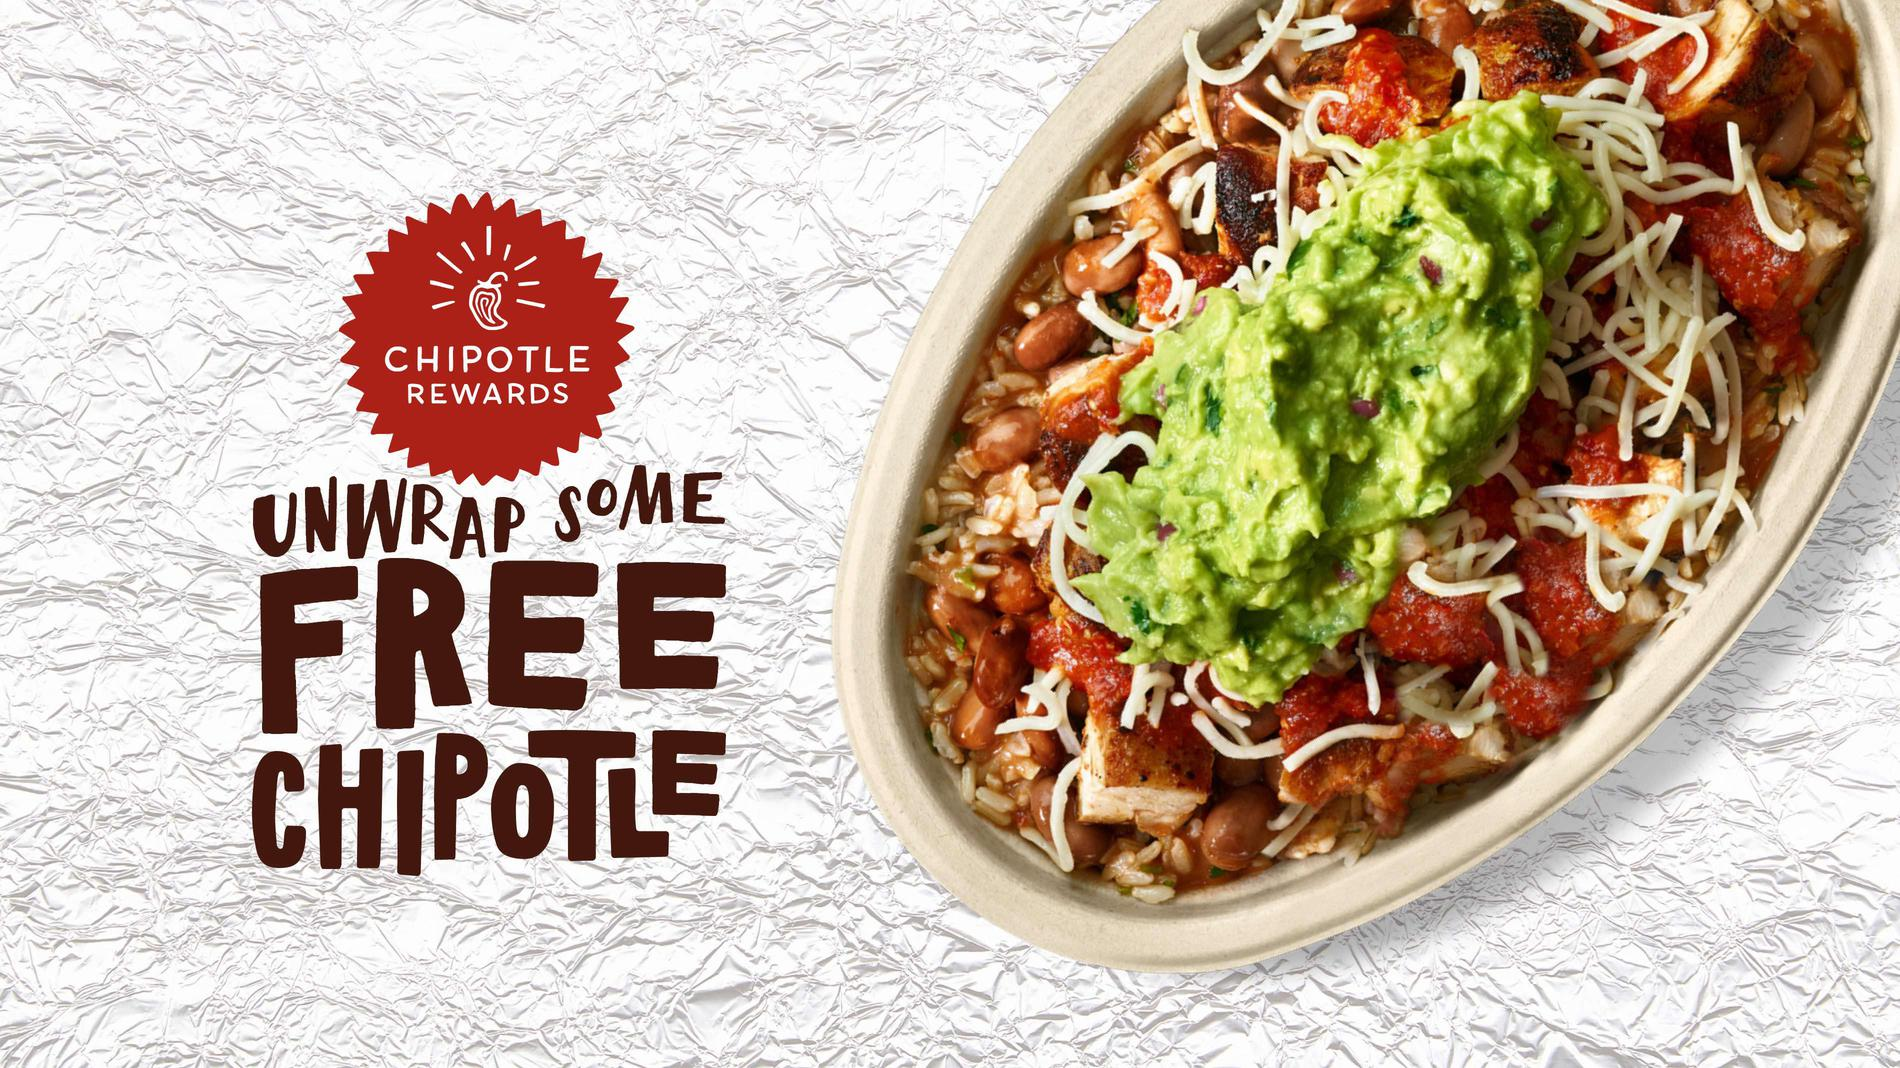 Chipotle Rewards is here